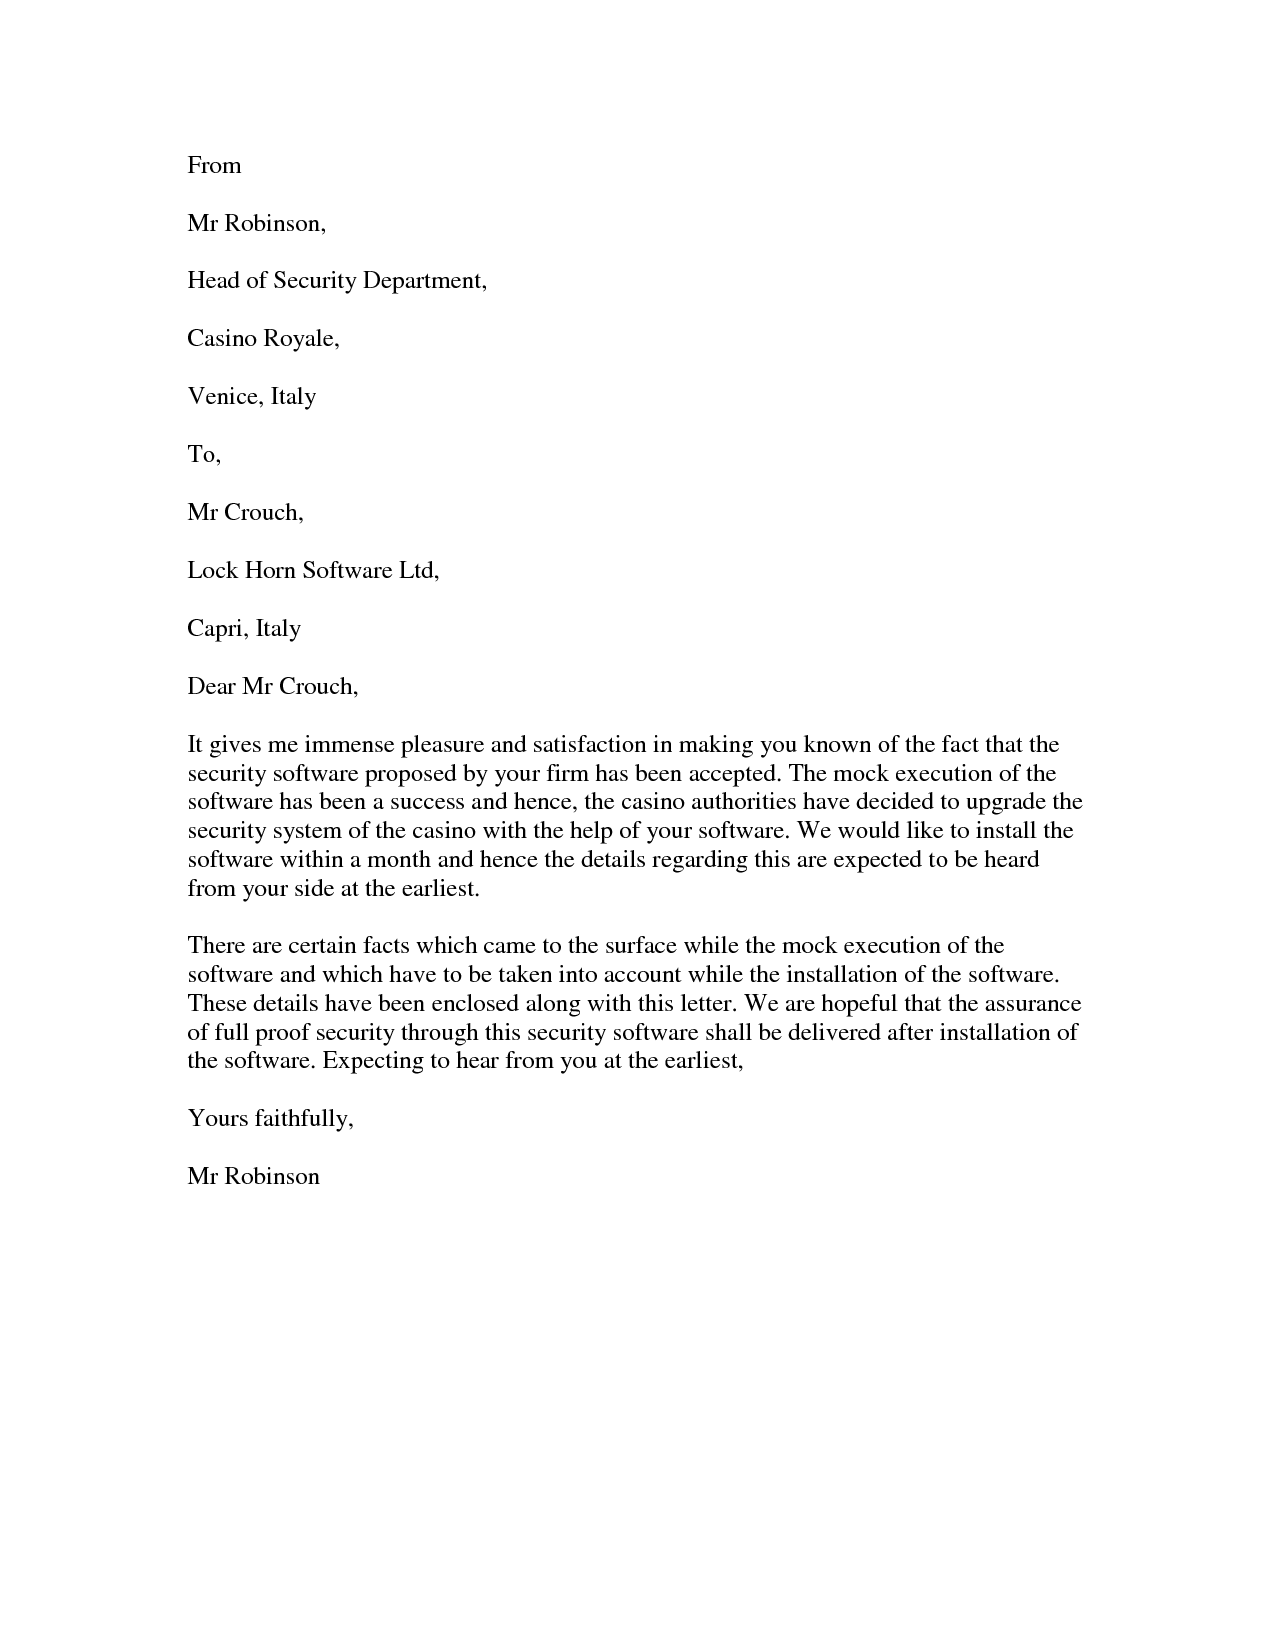 interview acceptance letter example of a letter sent via email software acceptance letter to ensure a mistake letter of acceptance use trustworthy sample